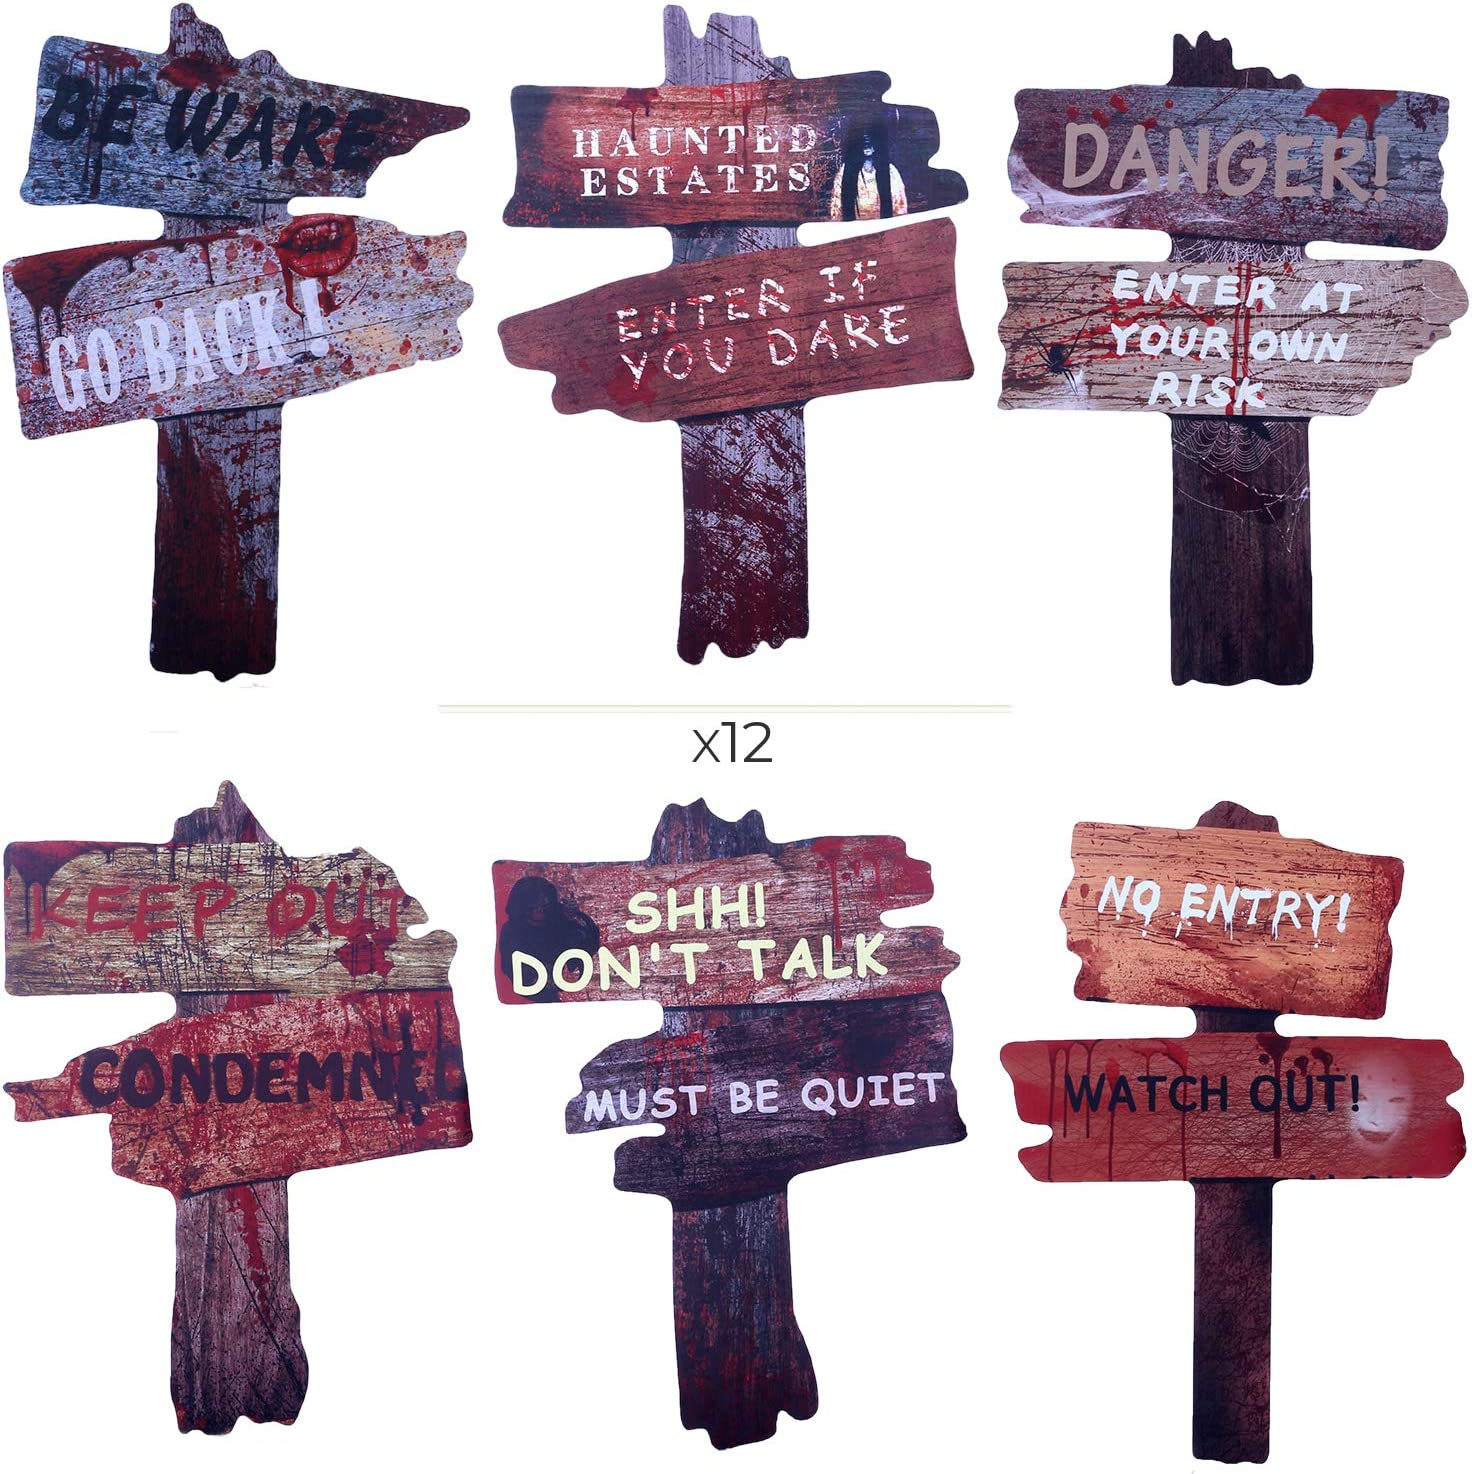 DEMESEX Halloween Decorations Halloween Yard Signs Spooky Warning Stake Waterproof Corrugated Board Larger Size Eye-catching Halloween Yard Décor for Lawn, Garden, Yard, Driveway (5pcs)